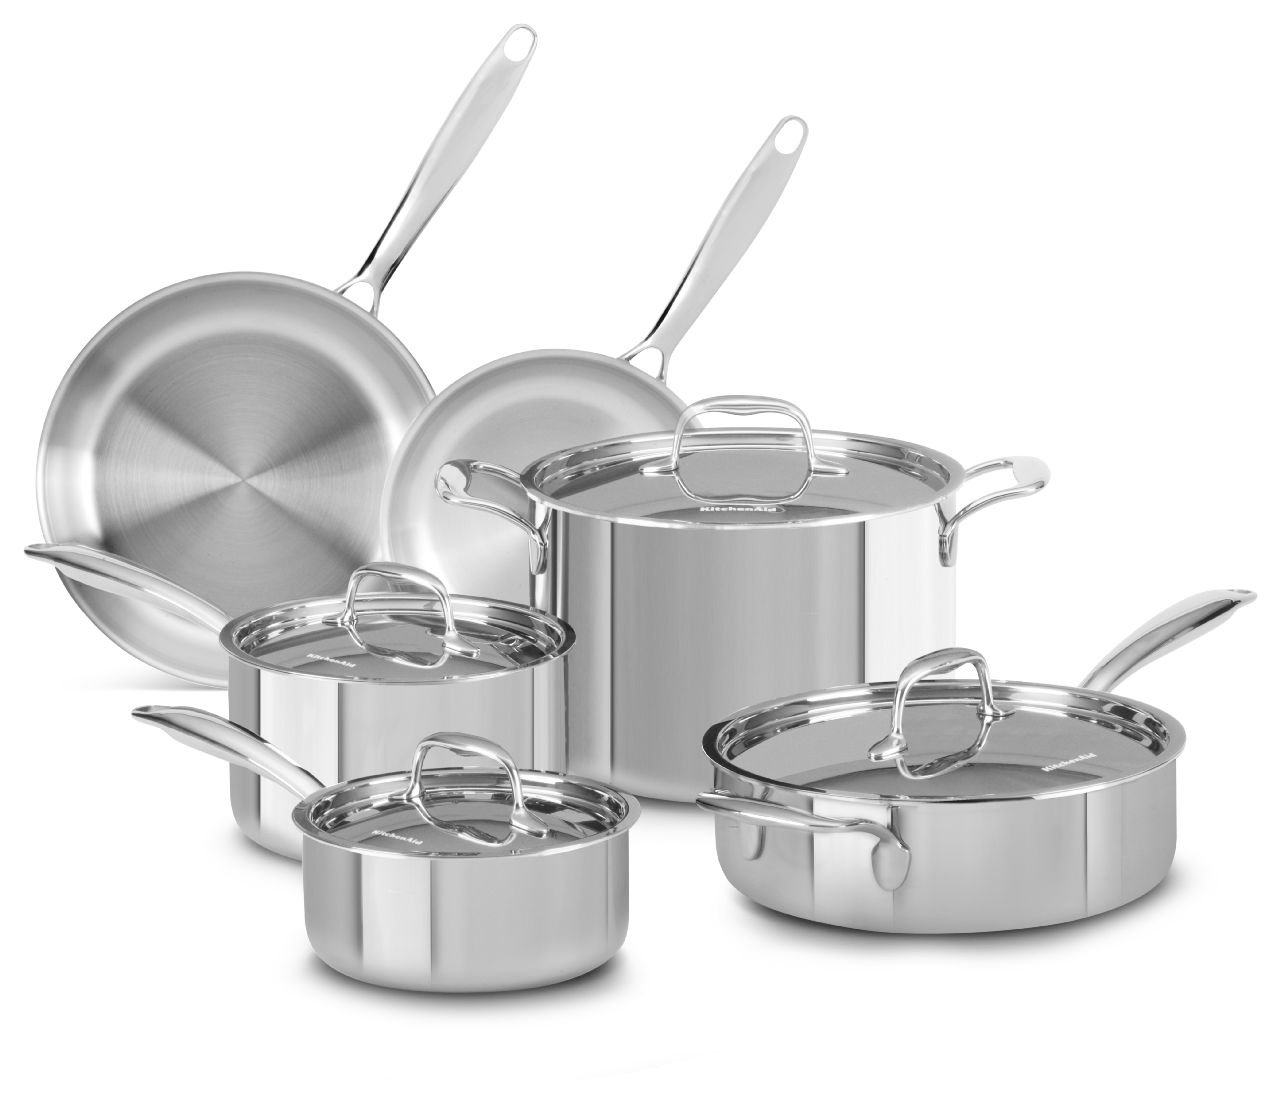 Amazon.com: KitchenAid KCTS10SLST Tri-Ply Stainless Steel 10-Piece ...